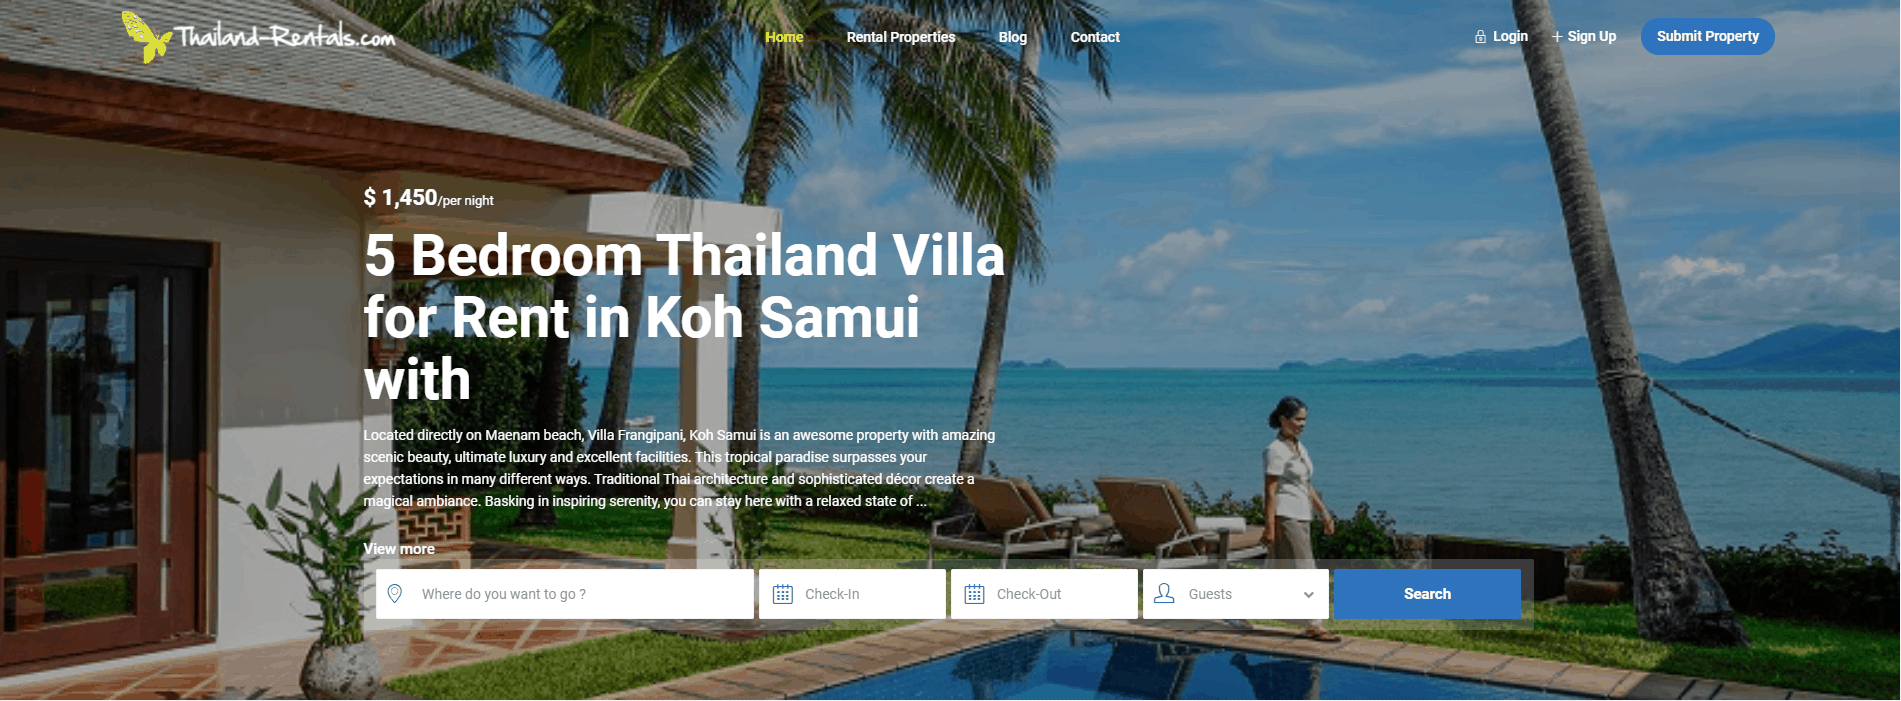 Thailand Rentals - Holiday & Vacation Rental Property in Thailand